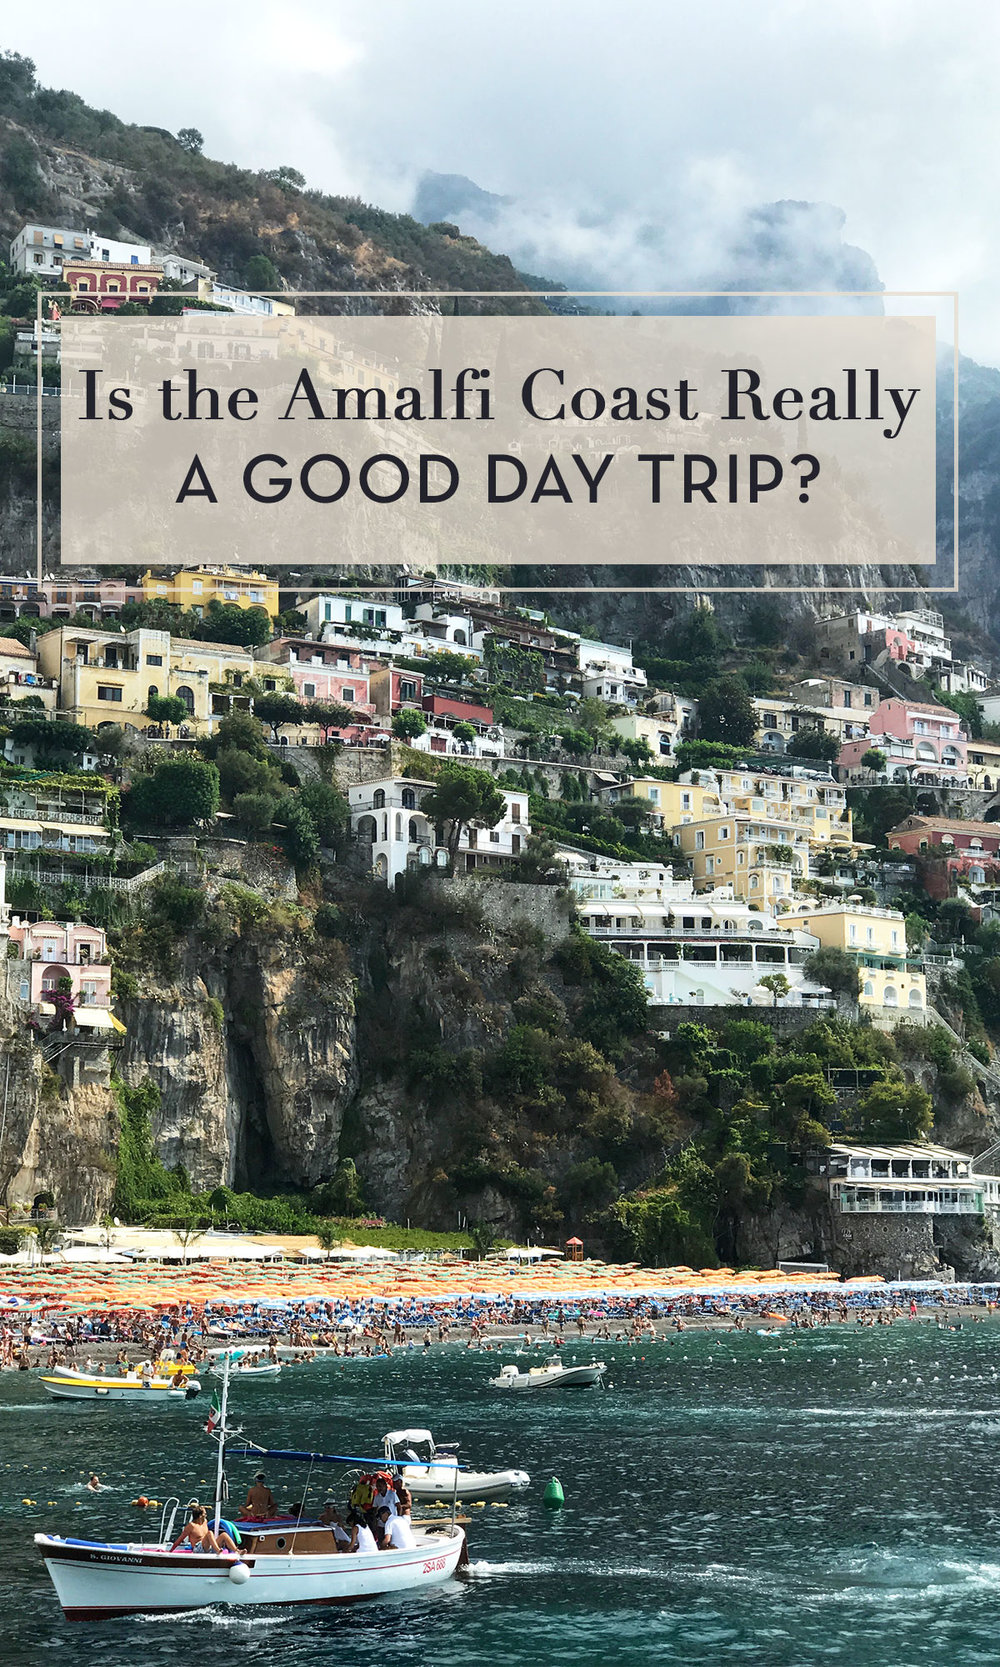 Should You Go to the Amalfi Coast for a Day Trip?